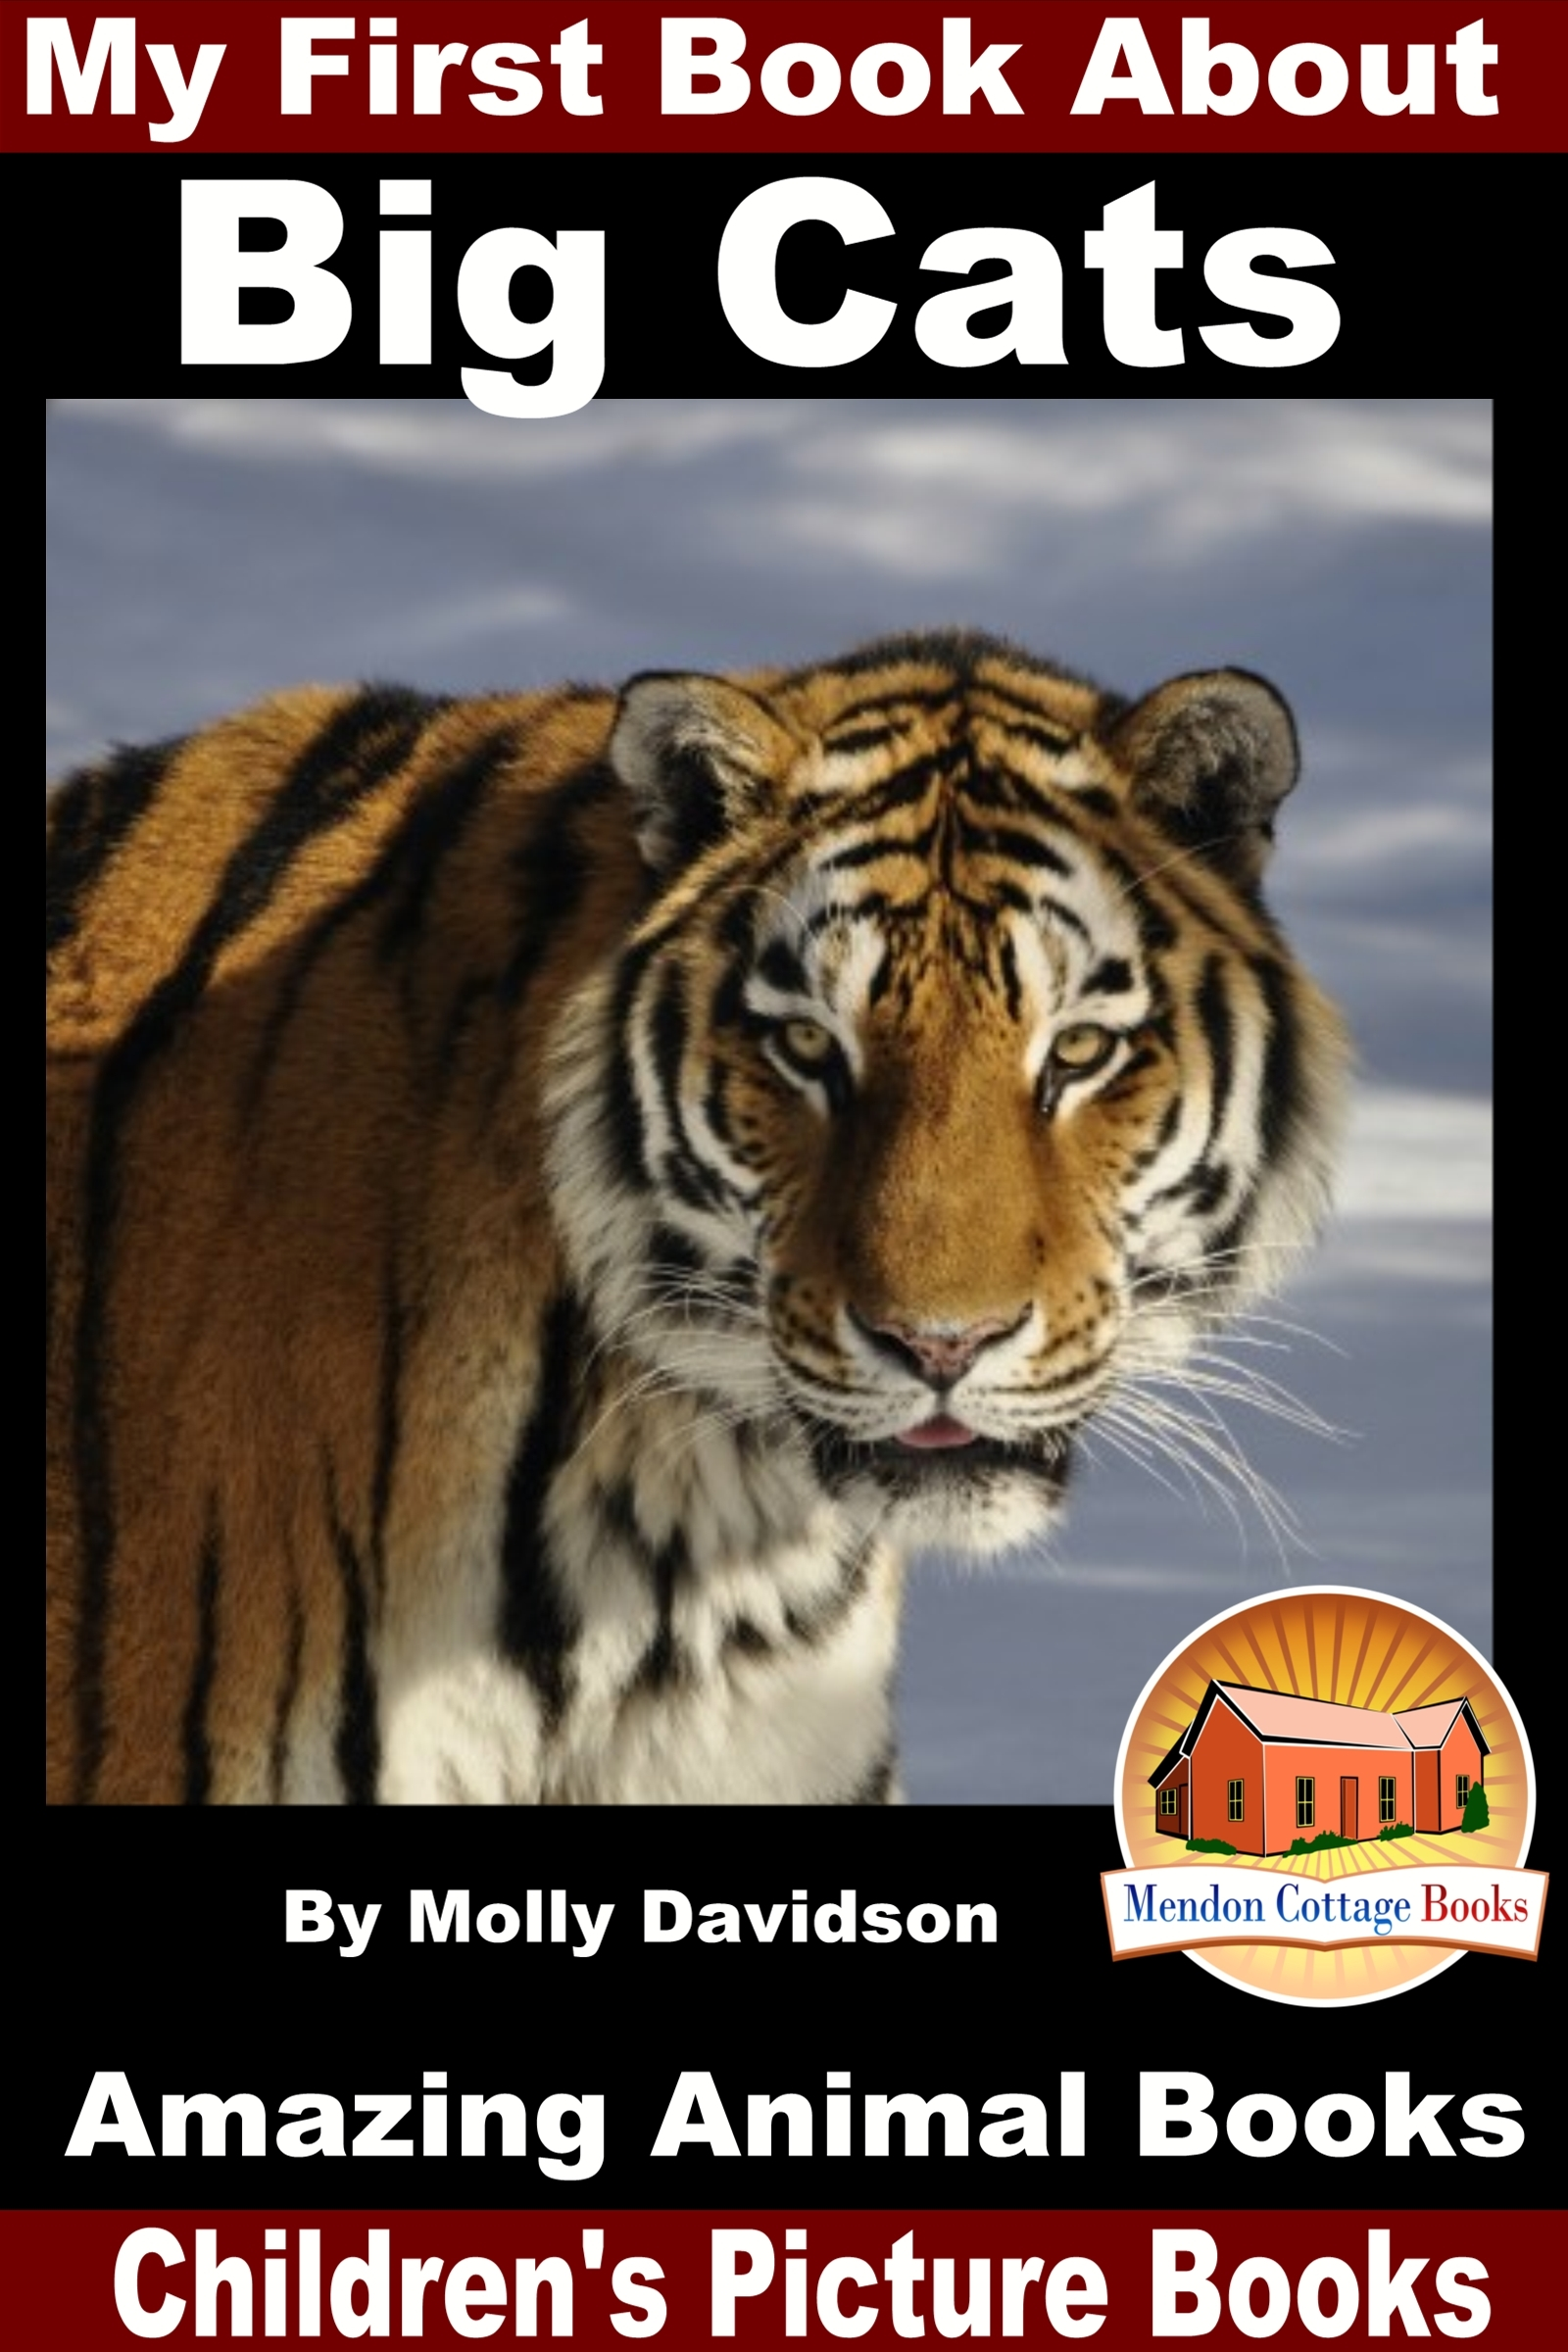 My First Book About Big Cats: Amazing Animal Books - Children's Picture Books